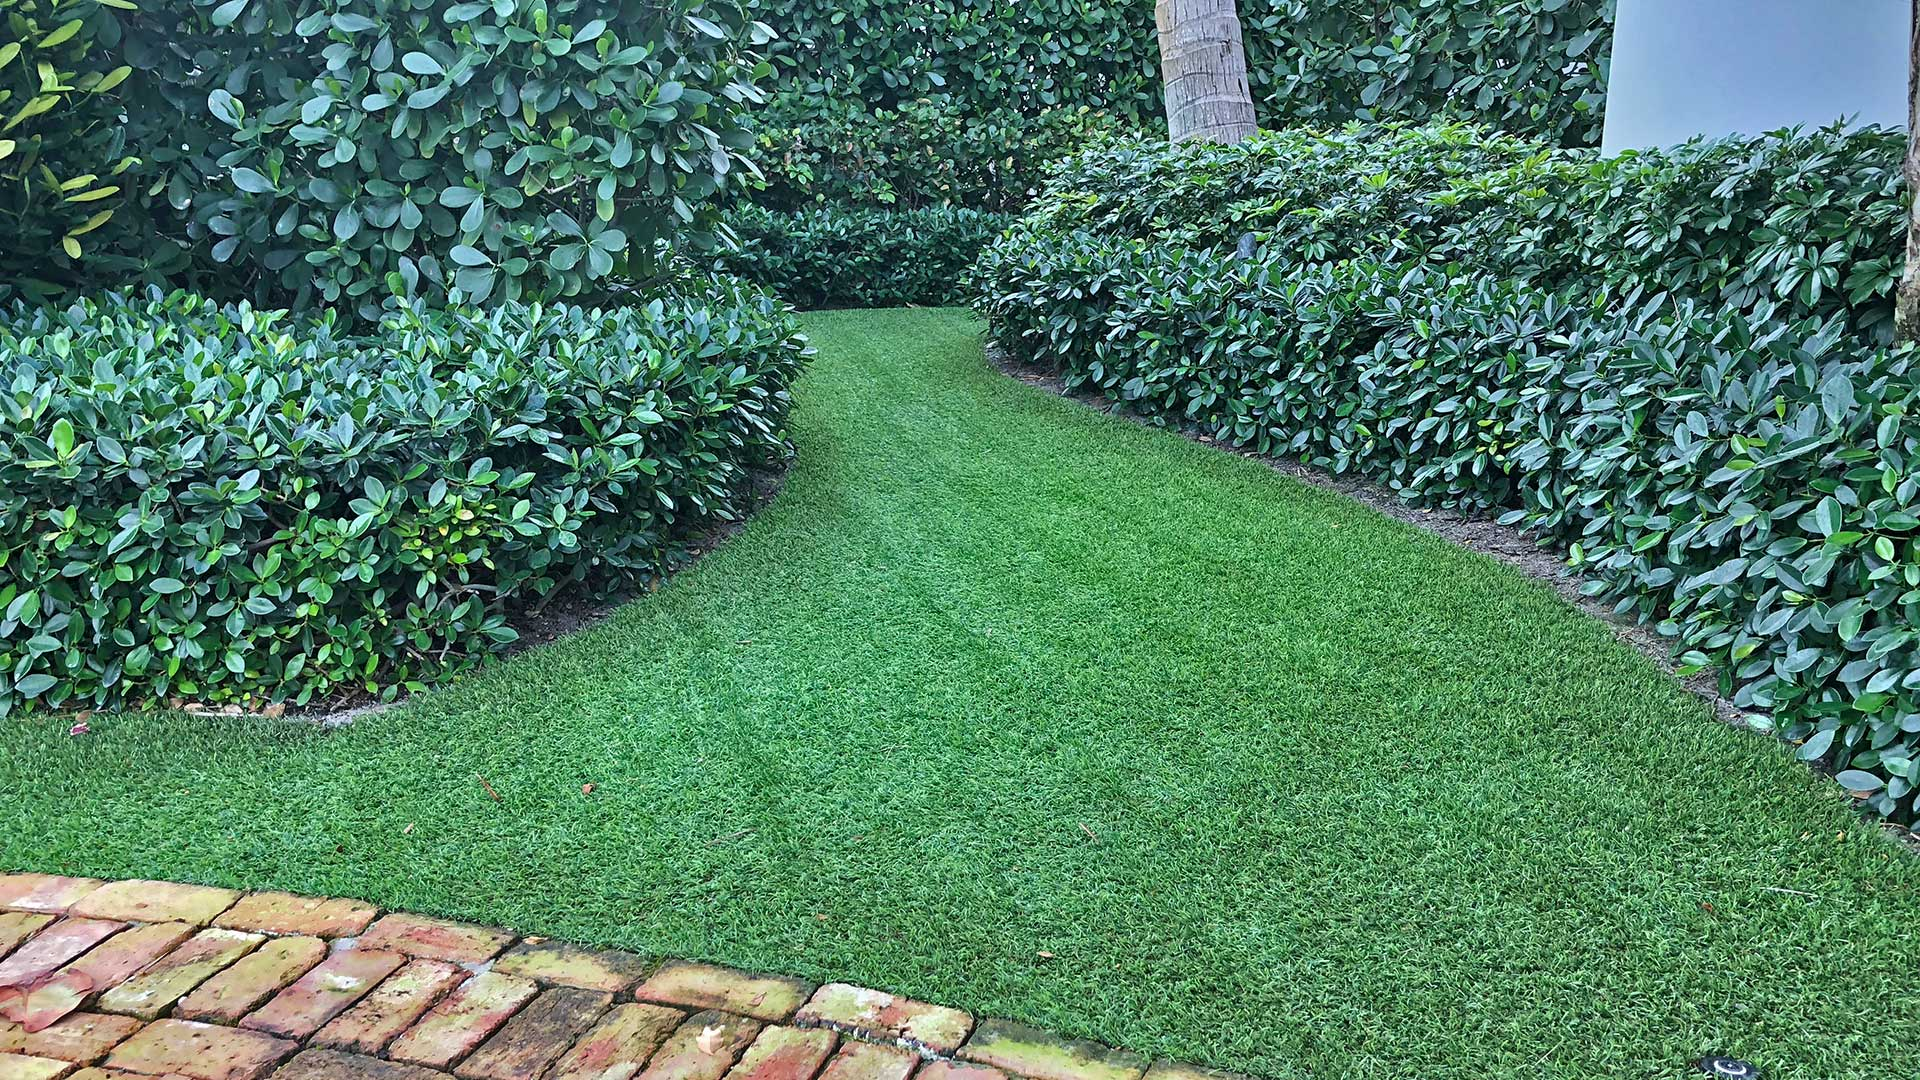 Artificial turf and landscape trimming at a home in Palm Beach, FL.